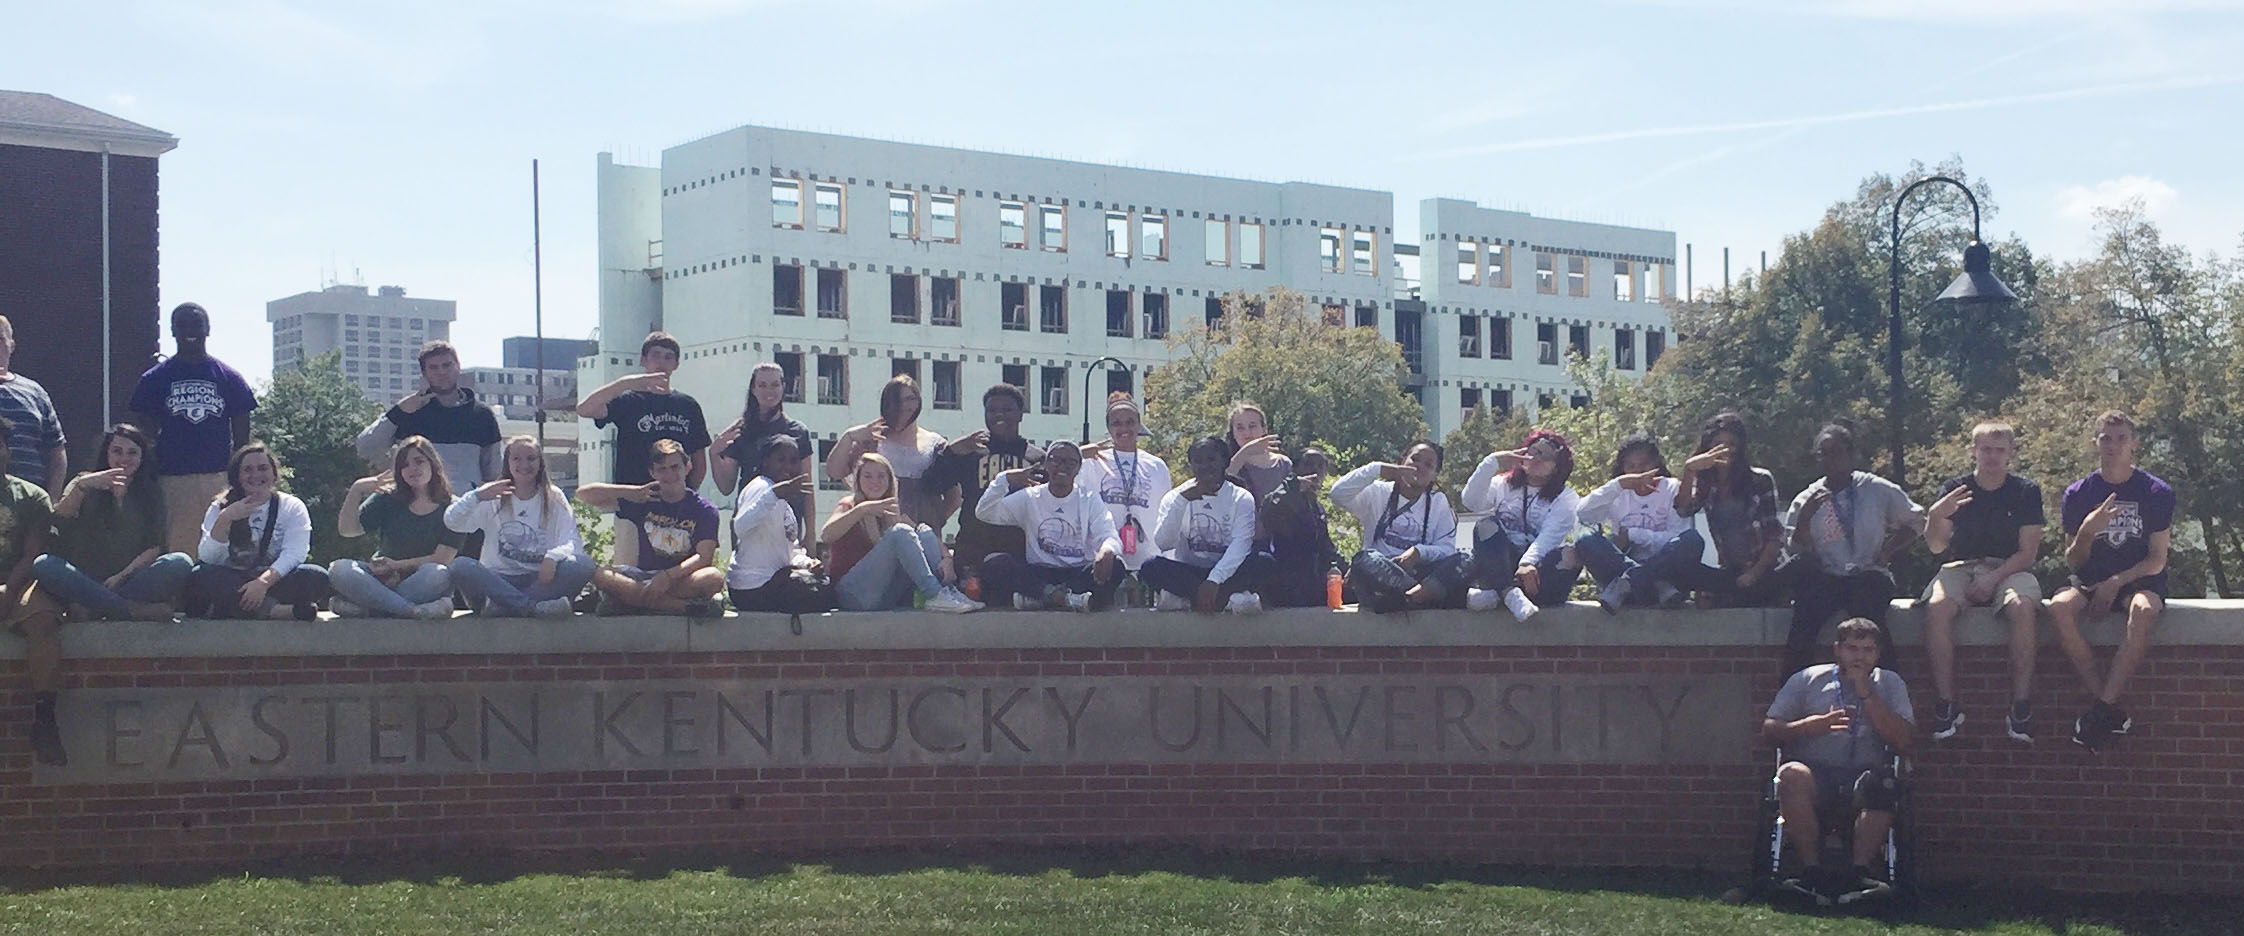 CHS students pose for a photo at the EKU sign on campus.